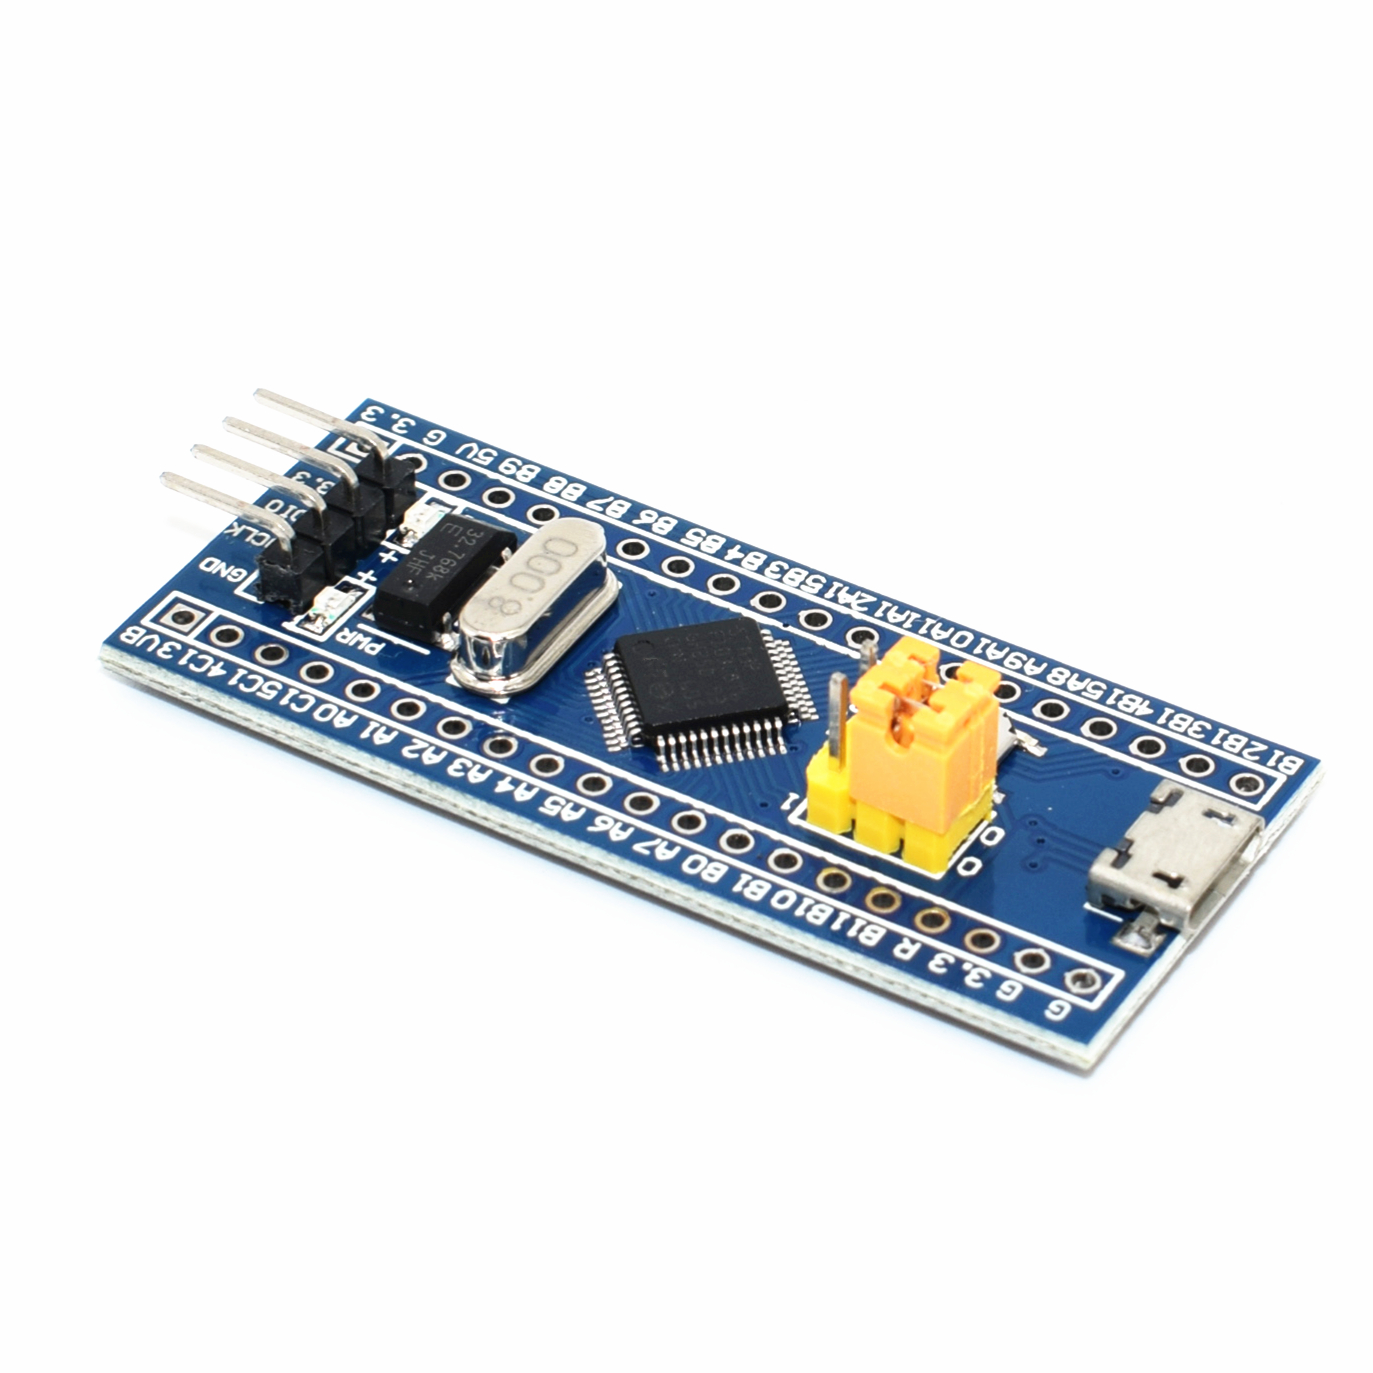 10pcs/lot TENSTAR ROBOT STM32F103C8T6 ARM STM32 Minimum System Development Board Module